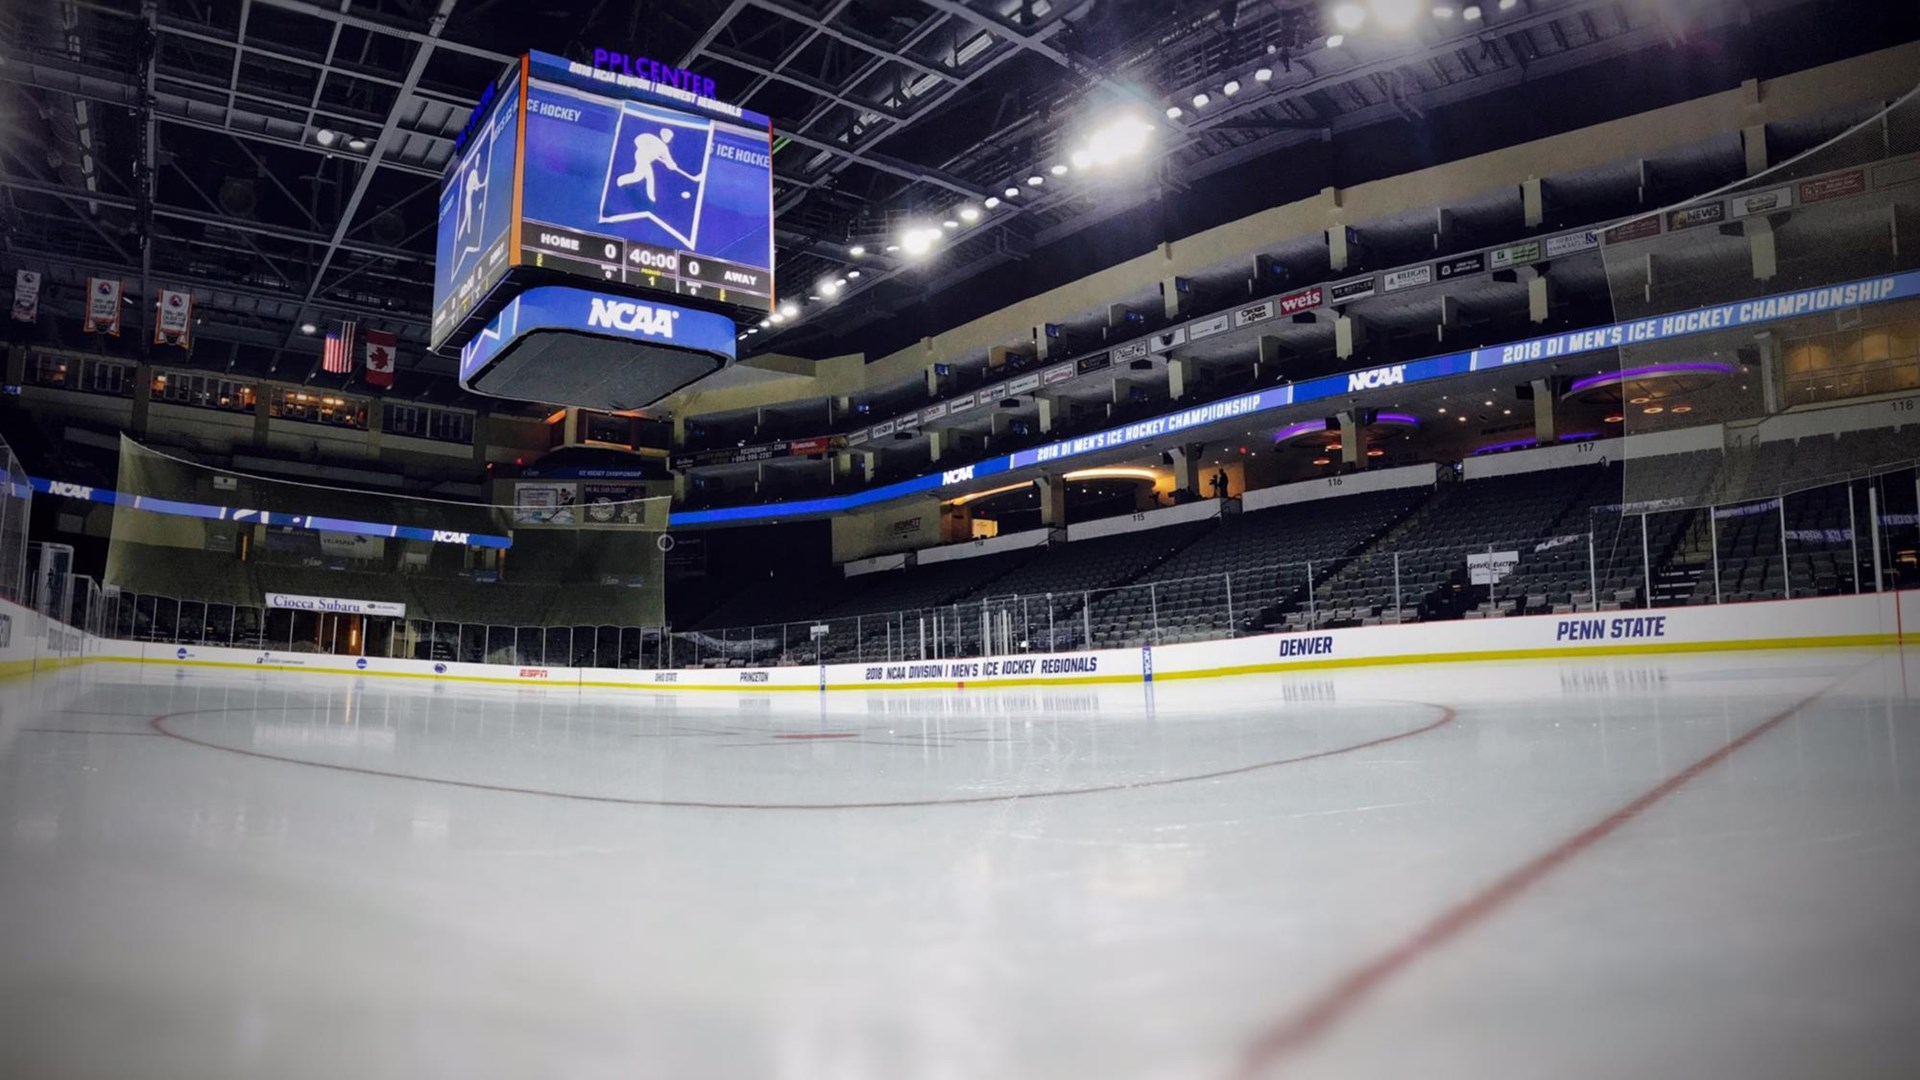 Penn State Selected To Host 2020 Ncaa Hockey Midwest Regional At Ppl